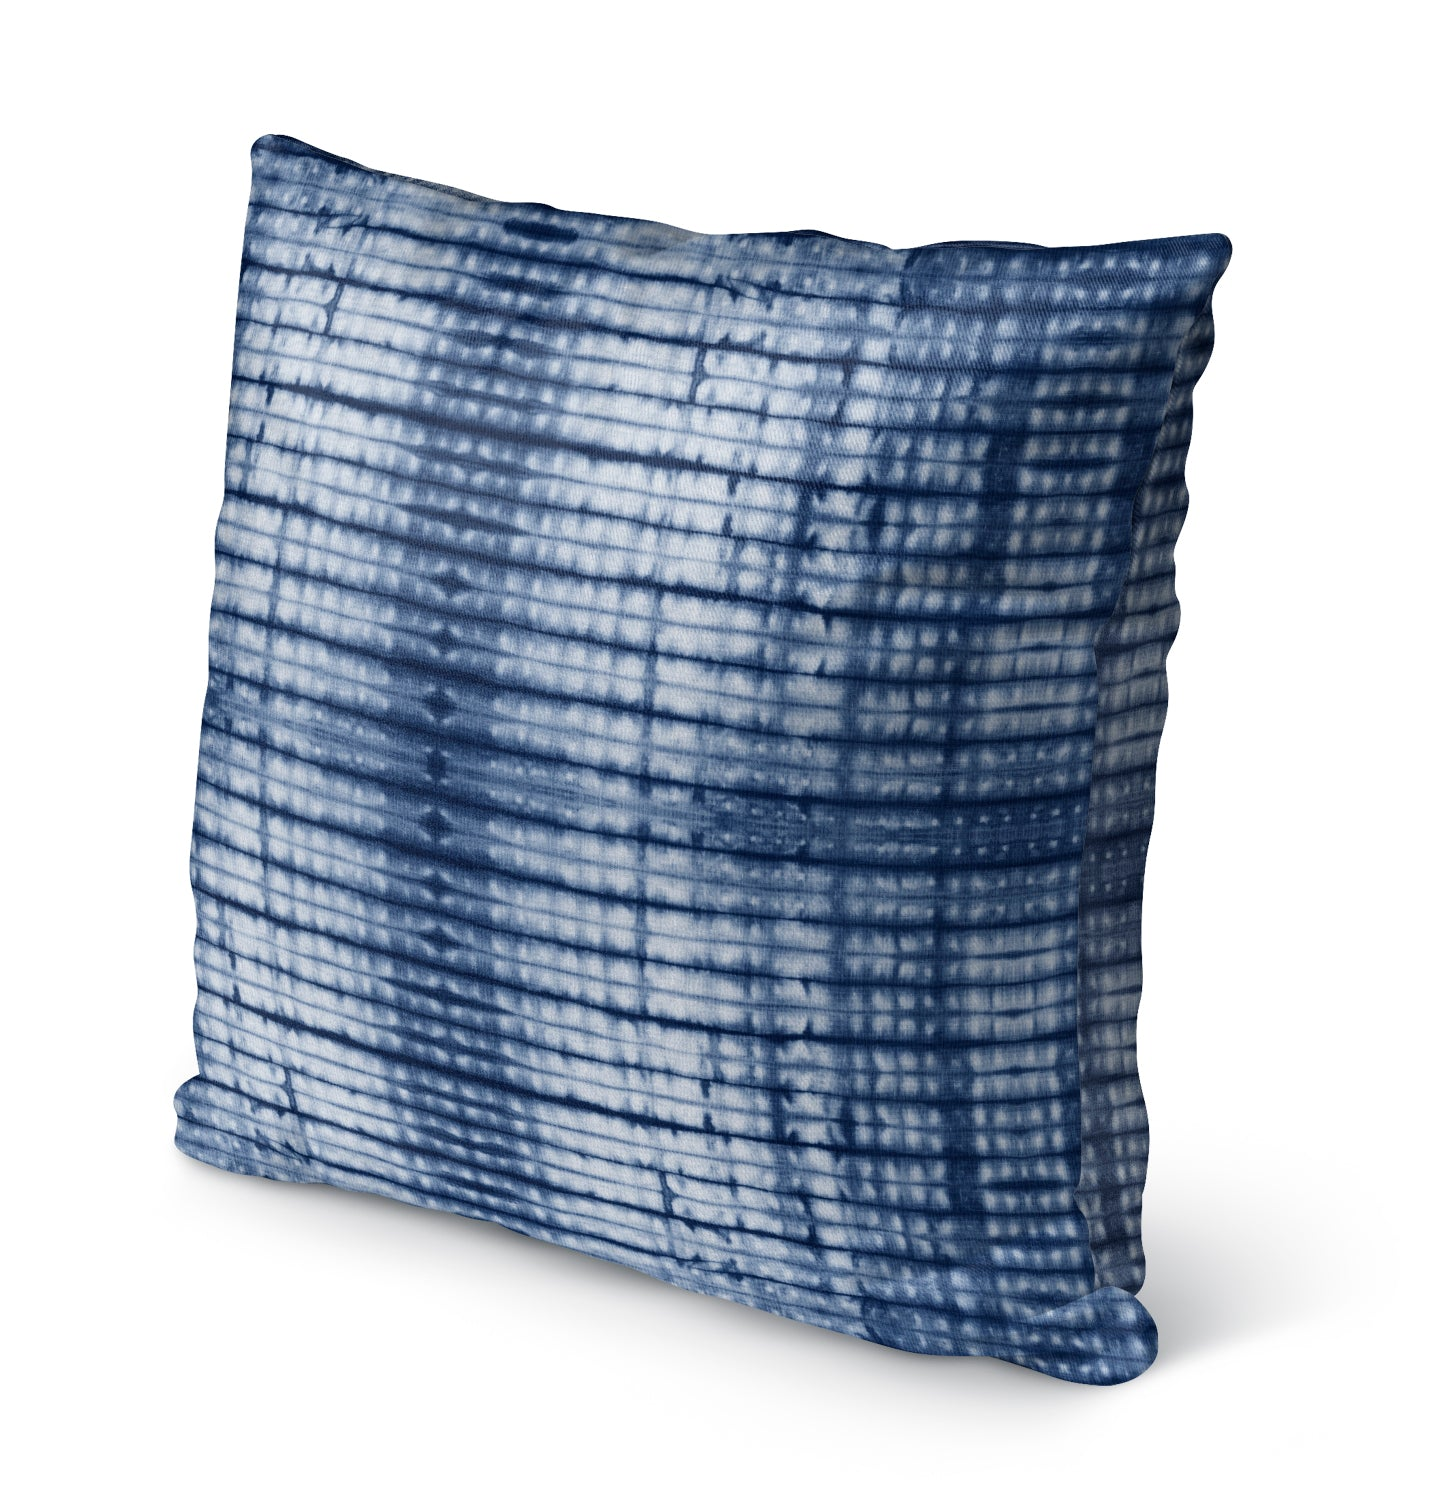 RAY Indoor|Outdoor Pillow By Terri Ellis